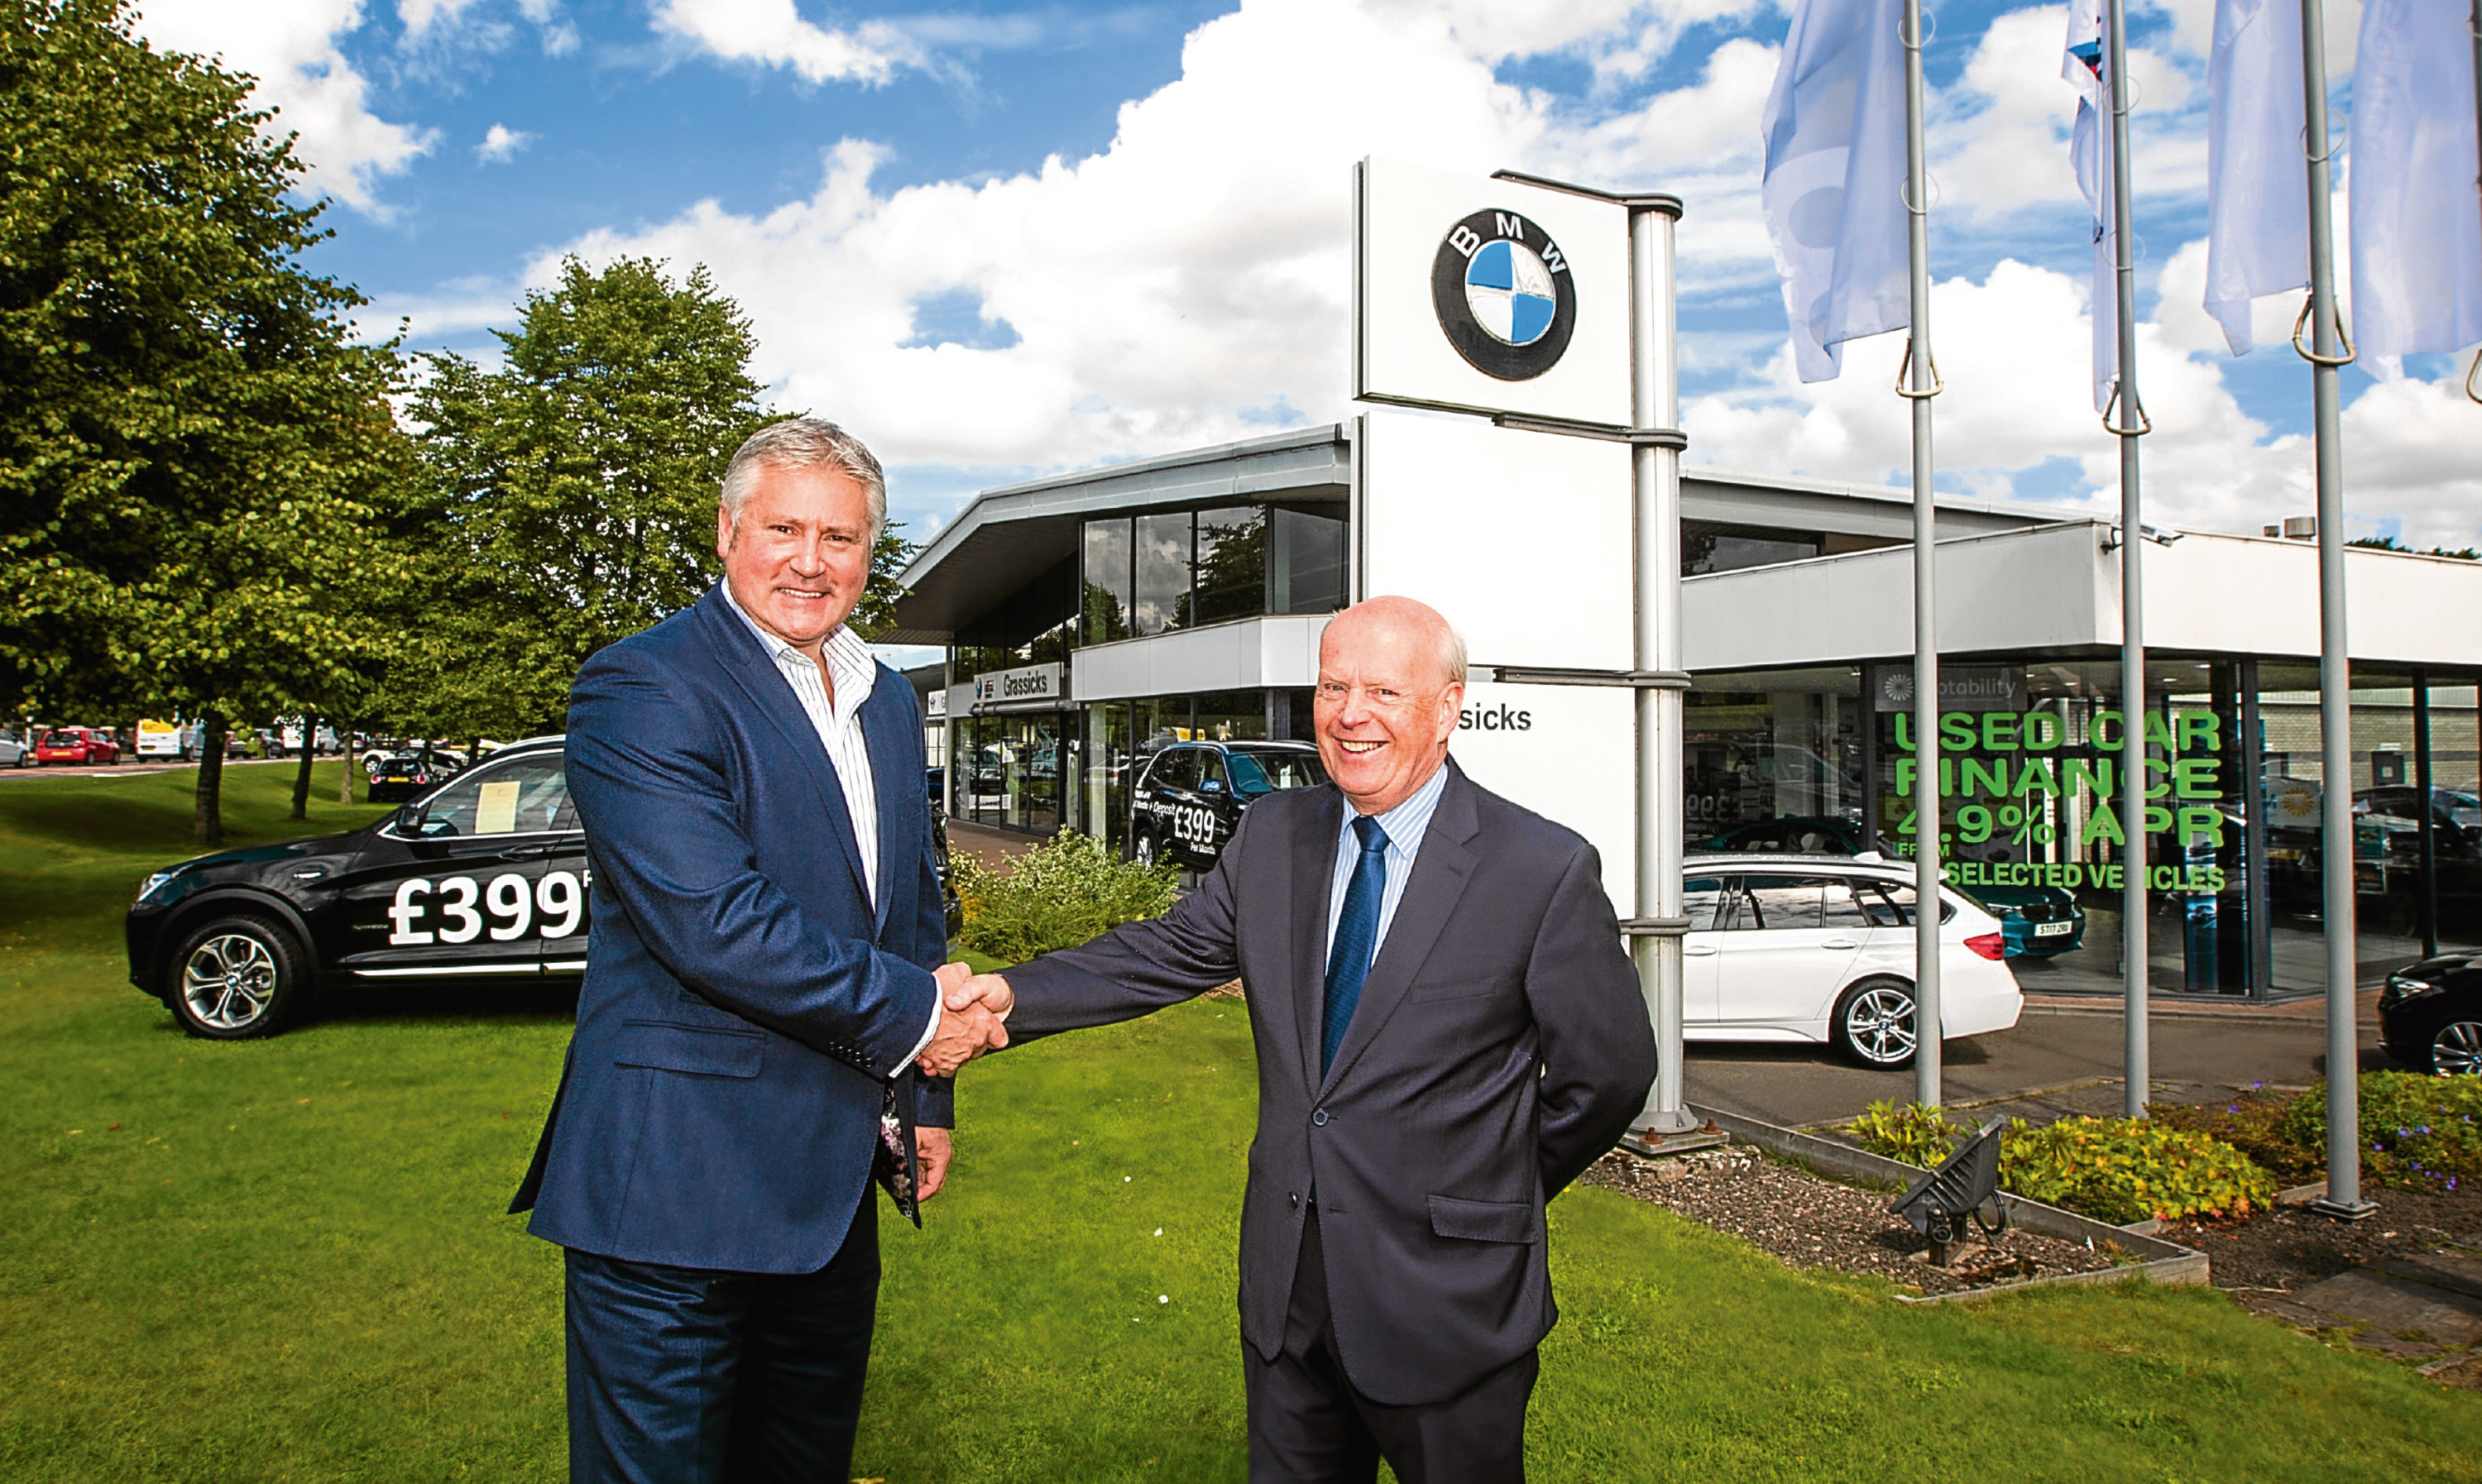 Keith Duncan, the Dundee-raised managing director of Eastern Western Motor Group with (right) Colin Grassick at BMW Grassicks  and MINI at Inveralmond, Perth.